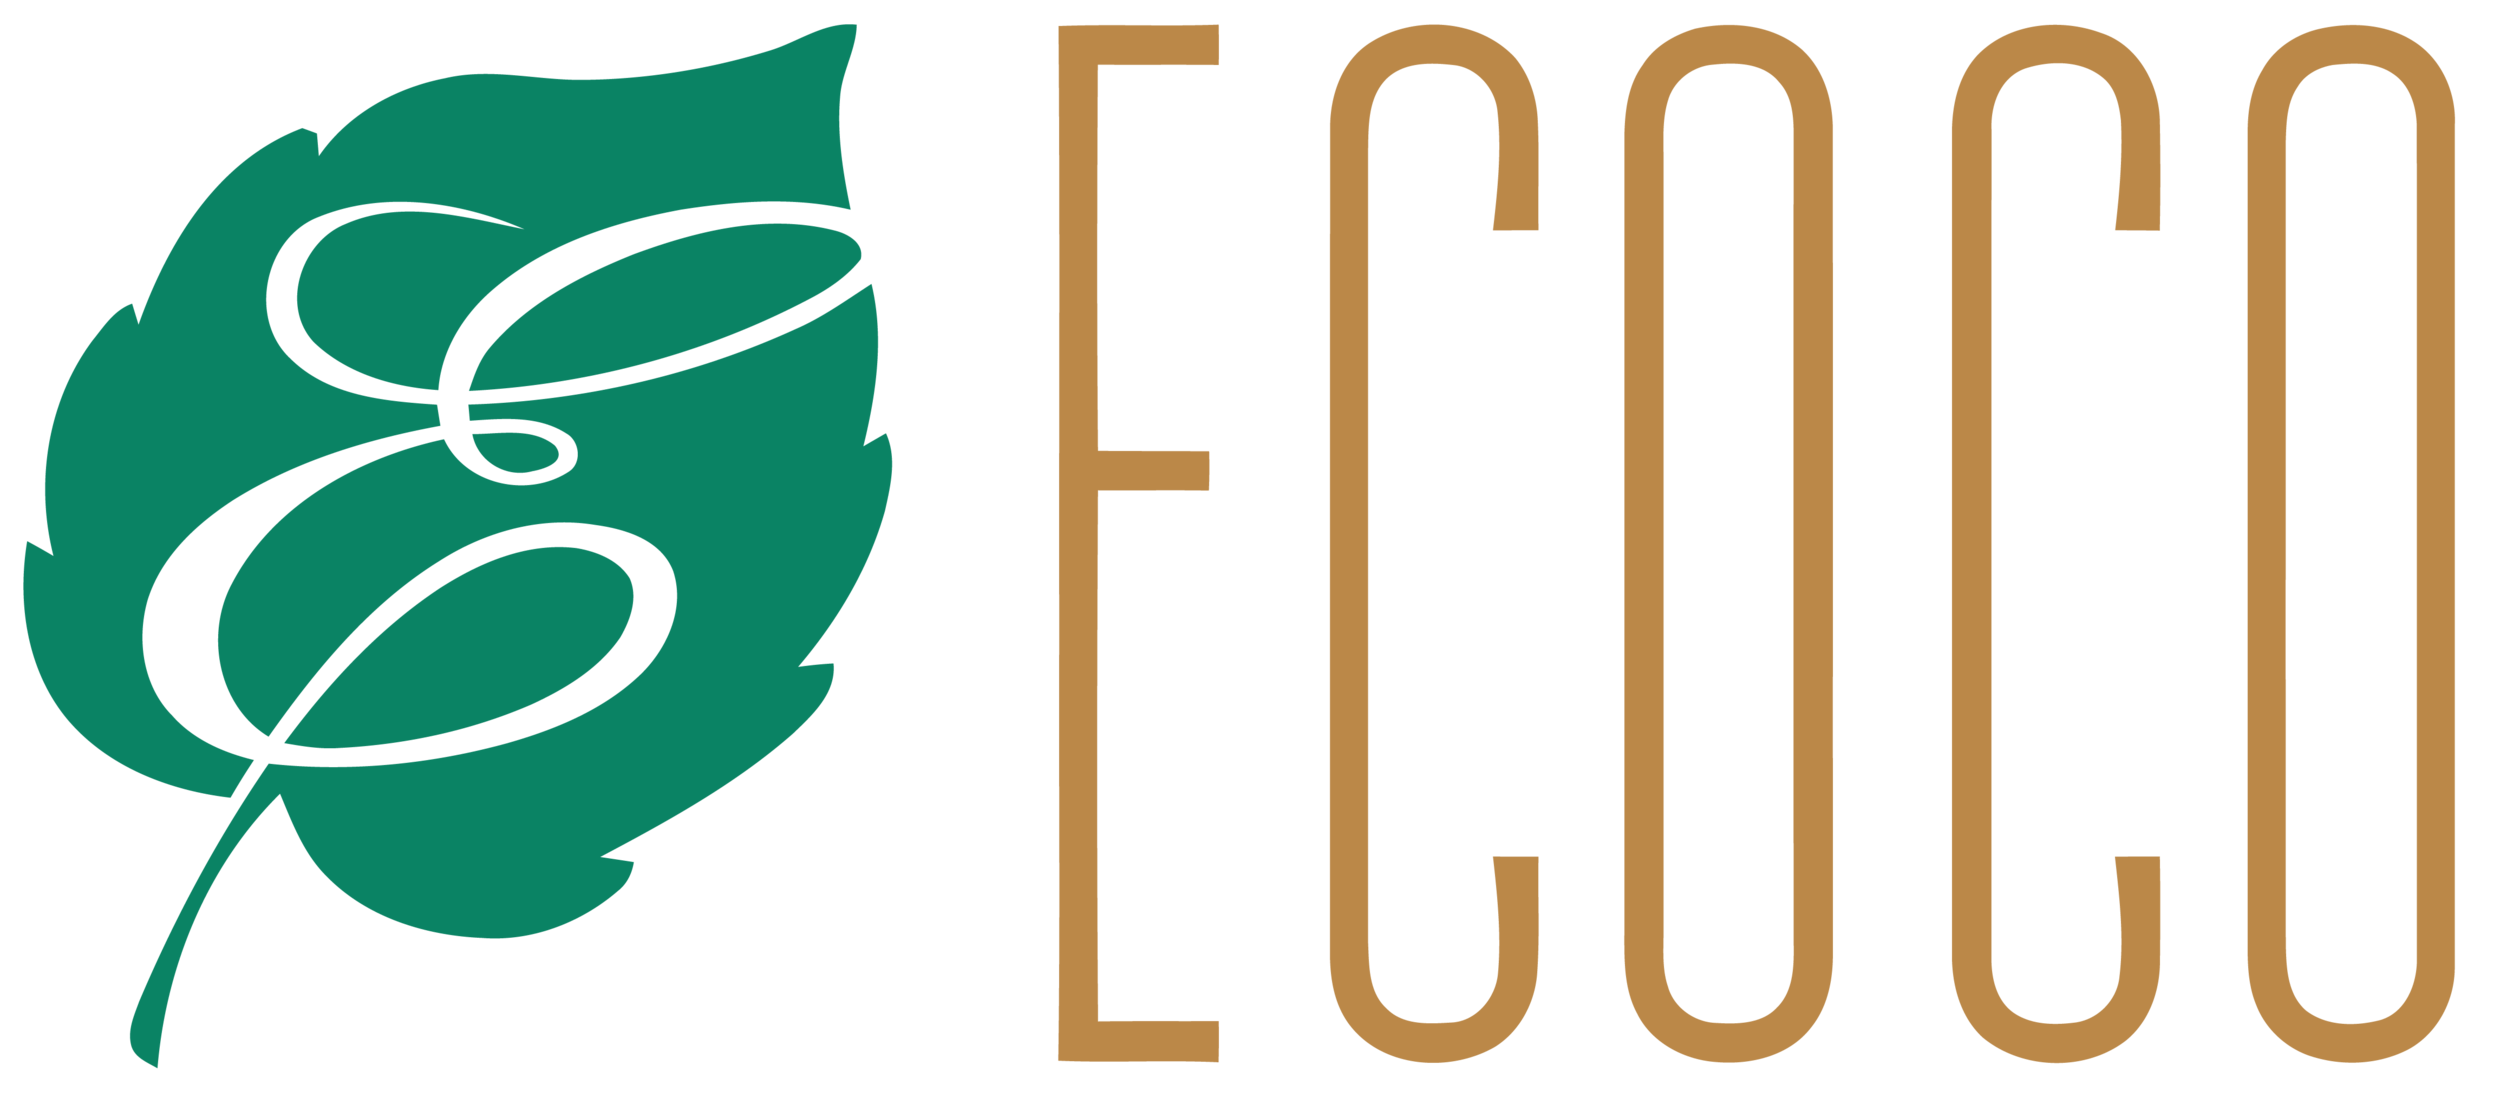 Ecoco Logo (1).png